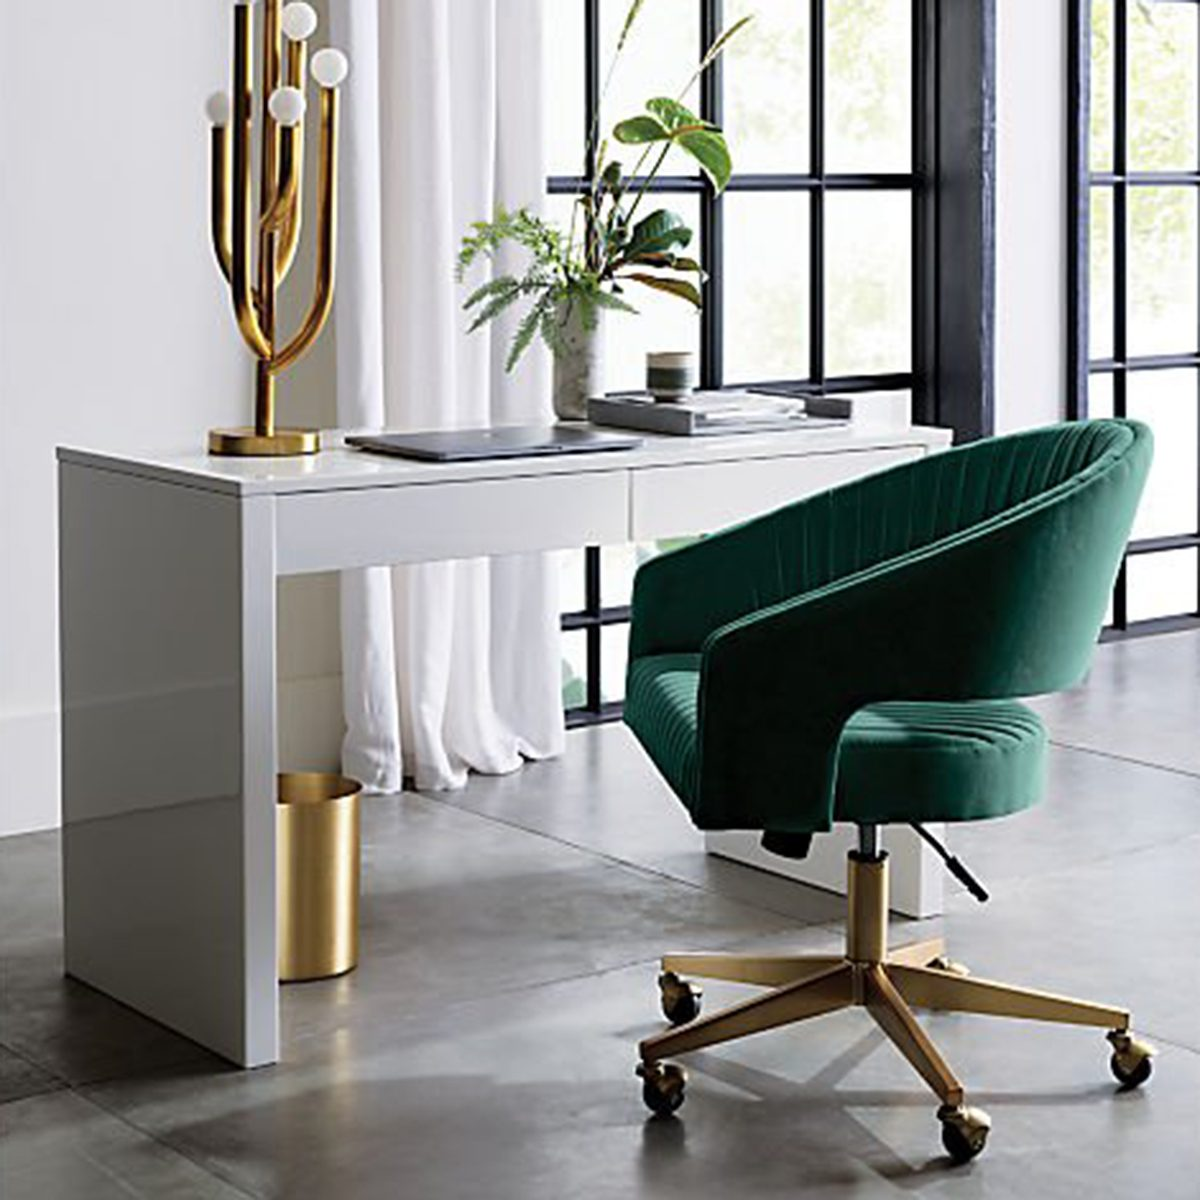 Green chair in a white room with gold accessories